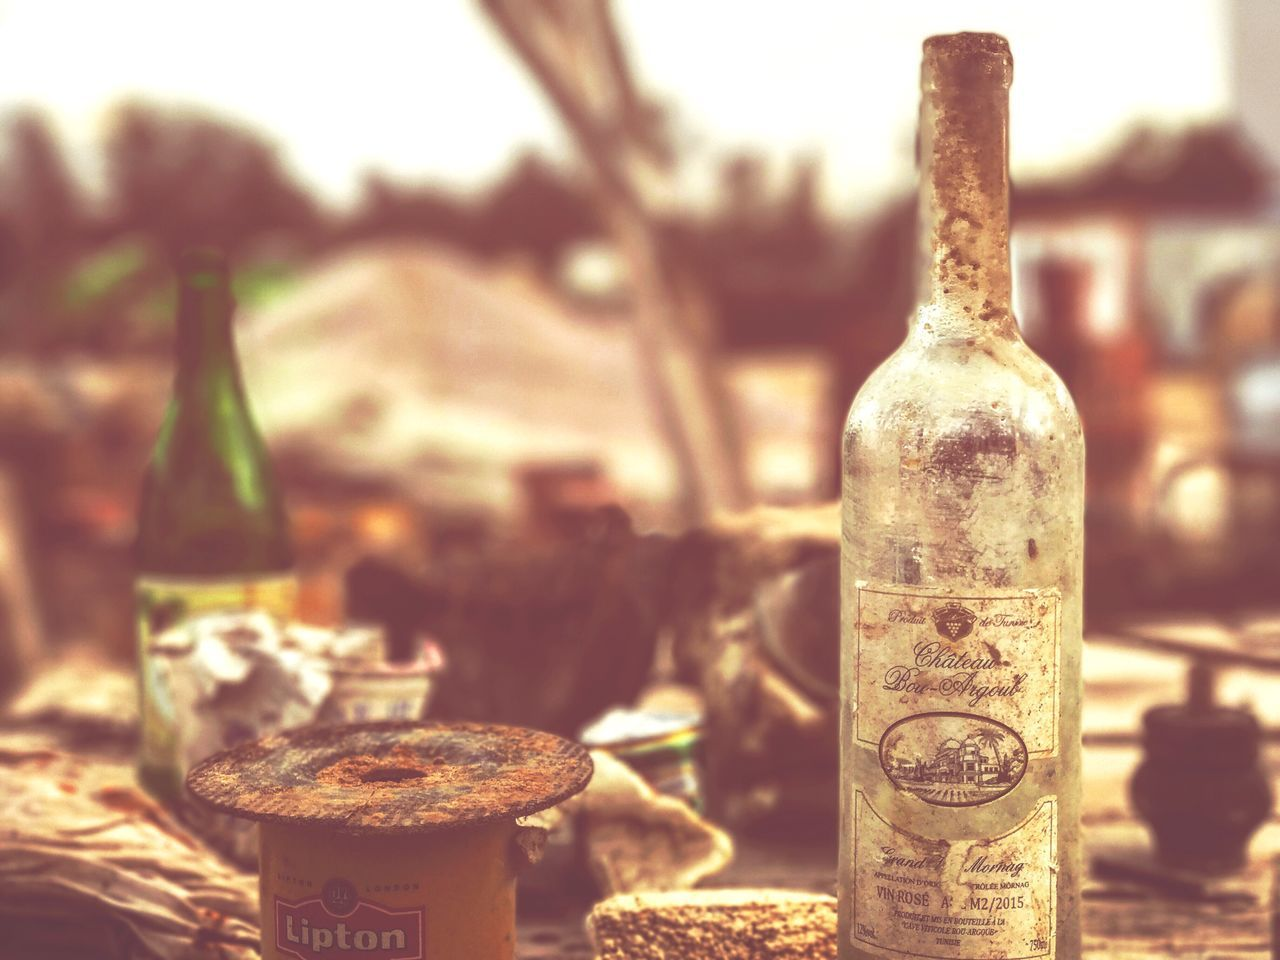 bottle, close-up, no people, focus on foreground, outdoors, day, cork - stopper, drink, alcohol